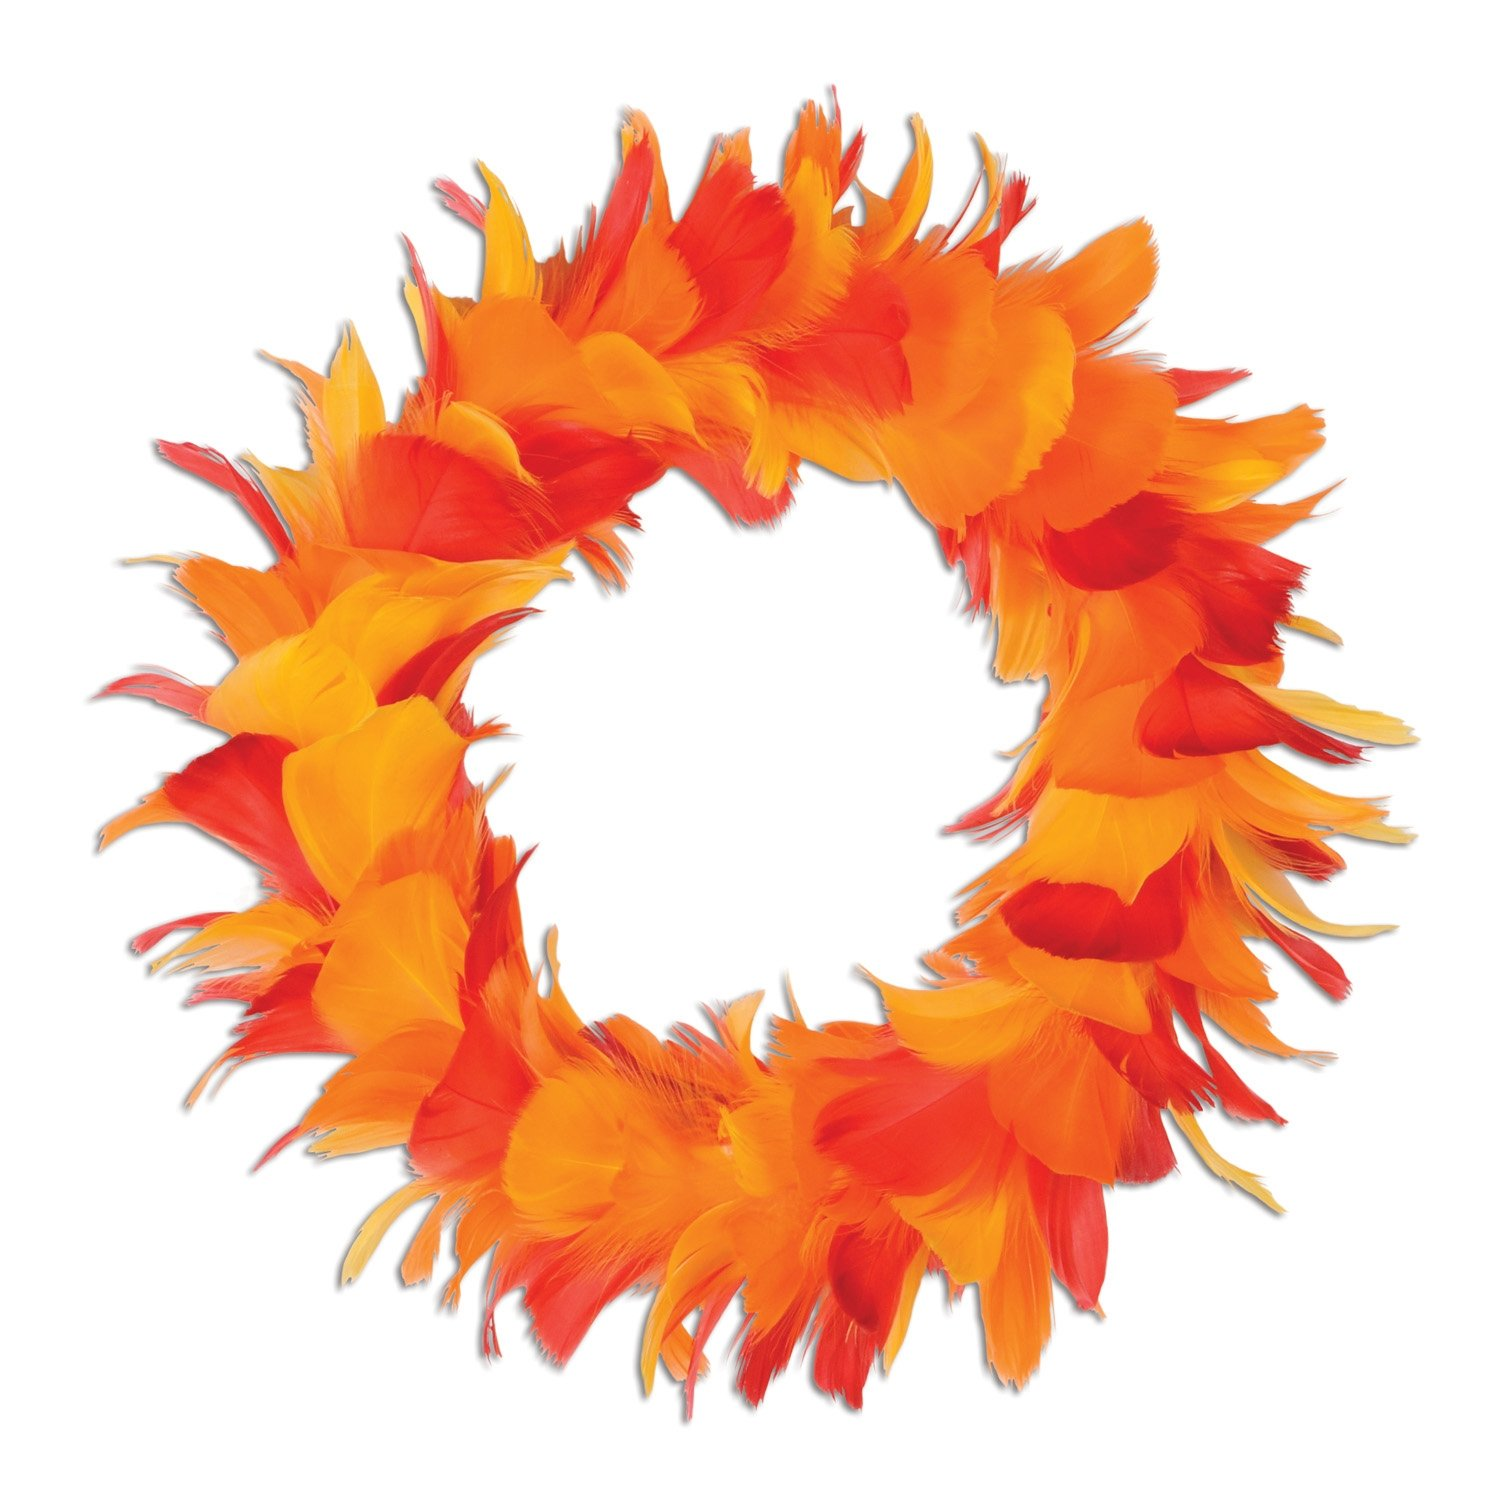 Beistle 57902-RB Feather Wreath, 8-Inch, Multicolor